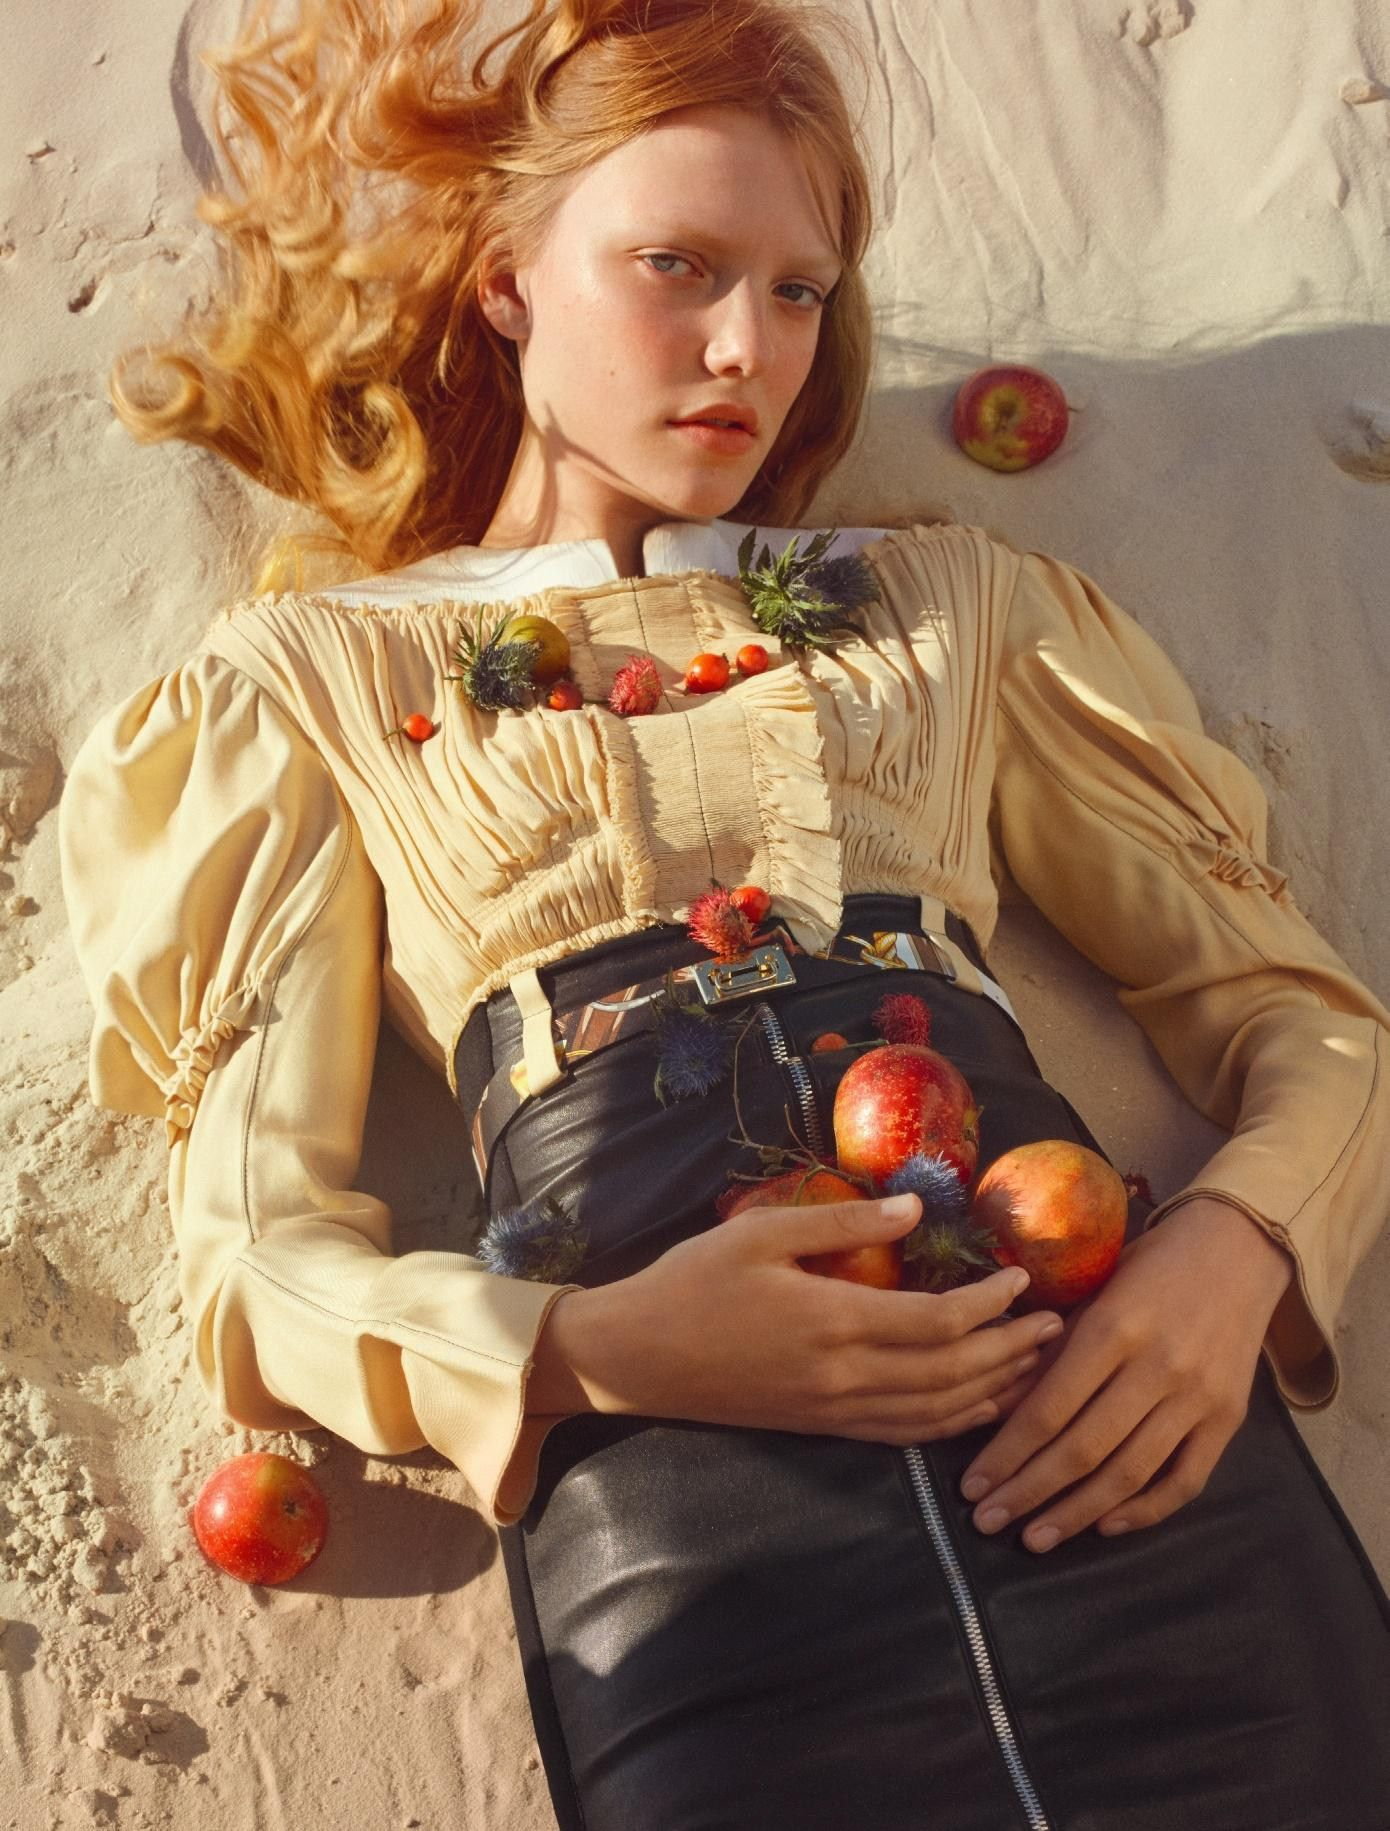 Mirage: Roos Abels by Txema Yeste for Numéro 179 December 2016/January 2017